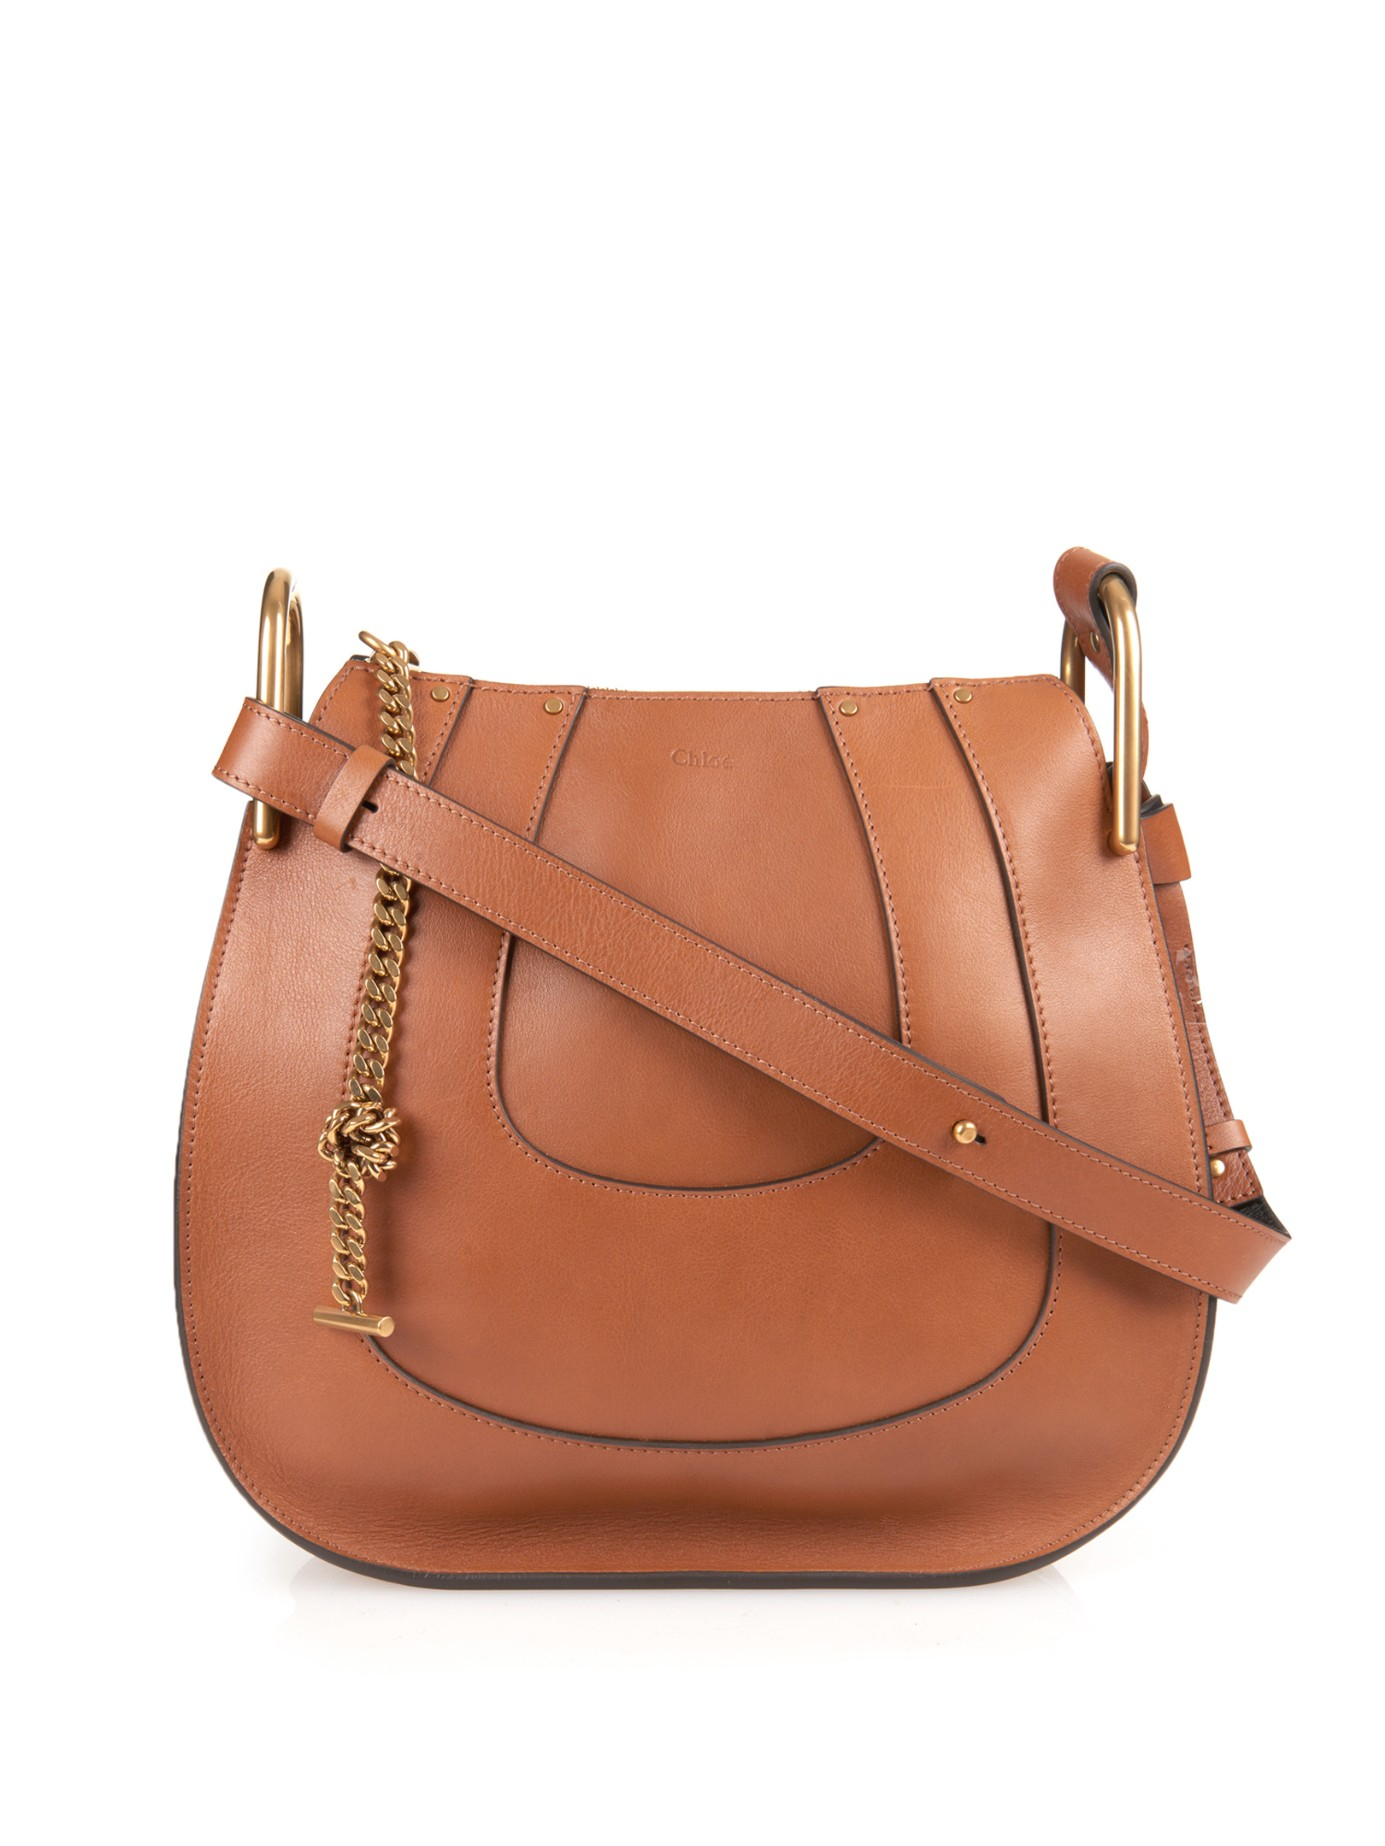 Chloé Hayley Hobo Leather Shoulder Bag in Brown | Lyst